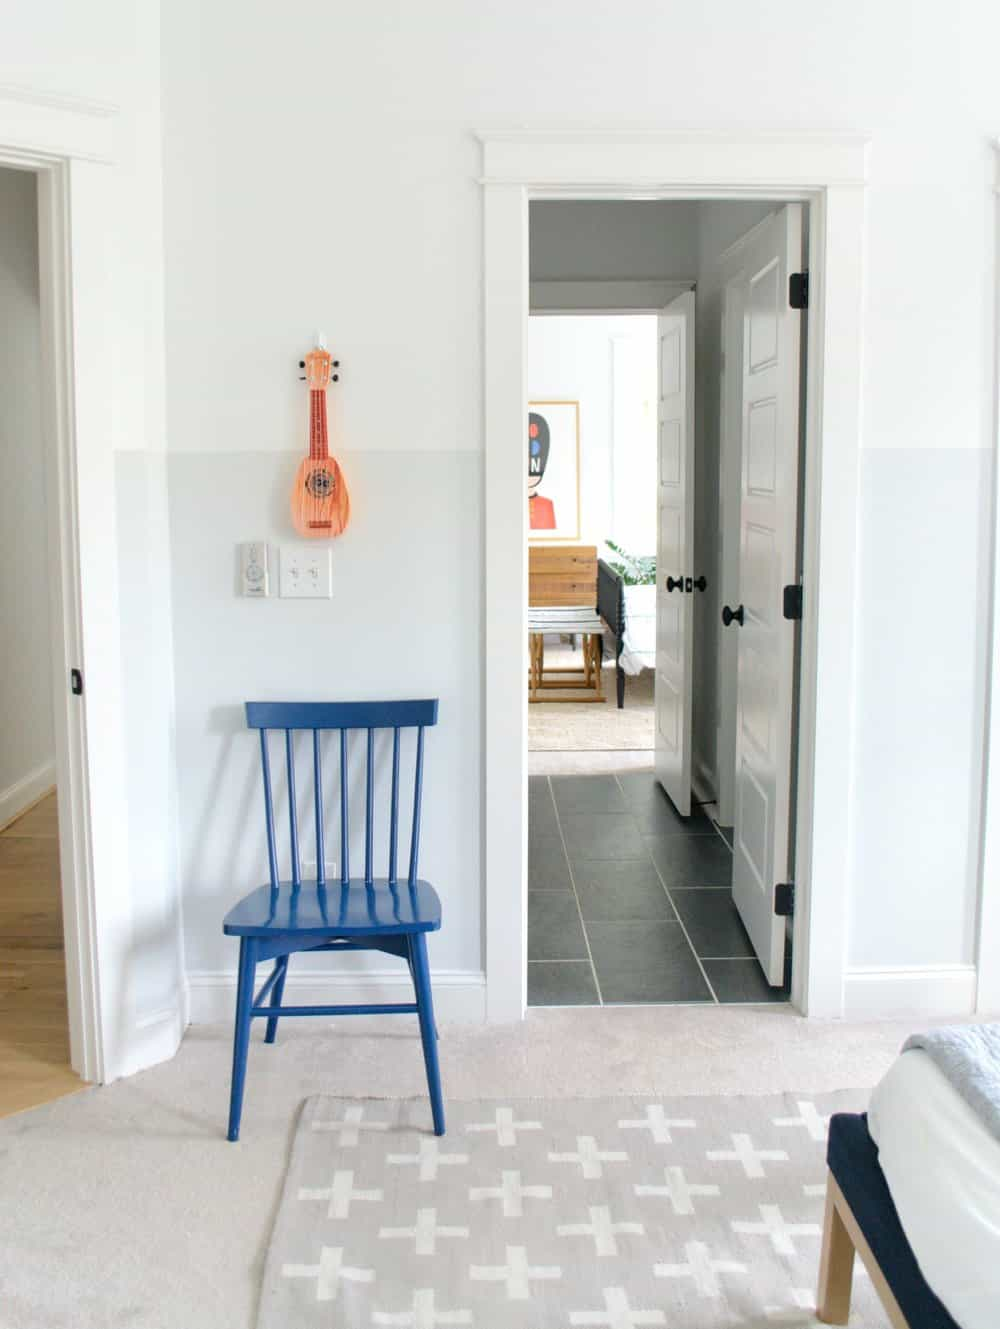 chair and child's guitar in bedroom with walls two tone